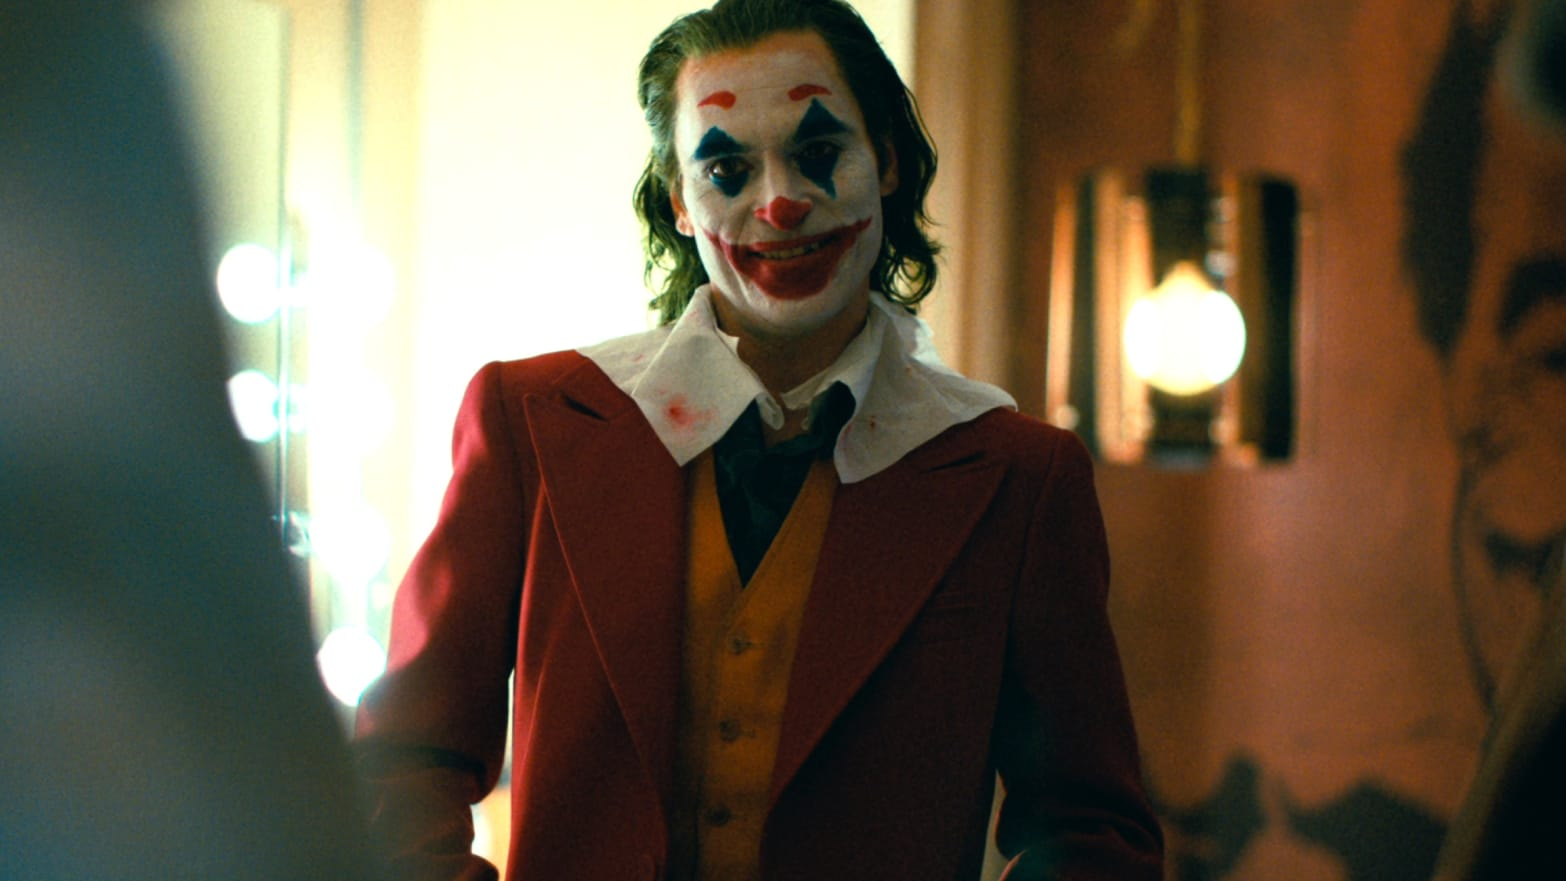 'Joker' Starring Joaquin Phoenix Is Strong Oscar Contender